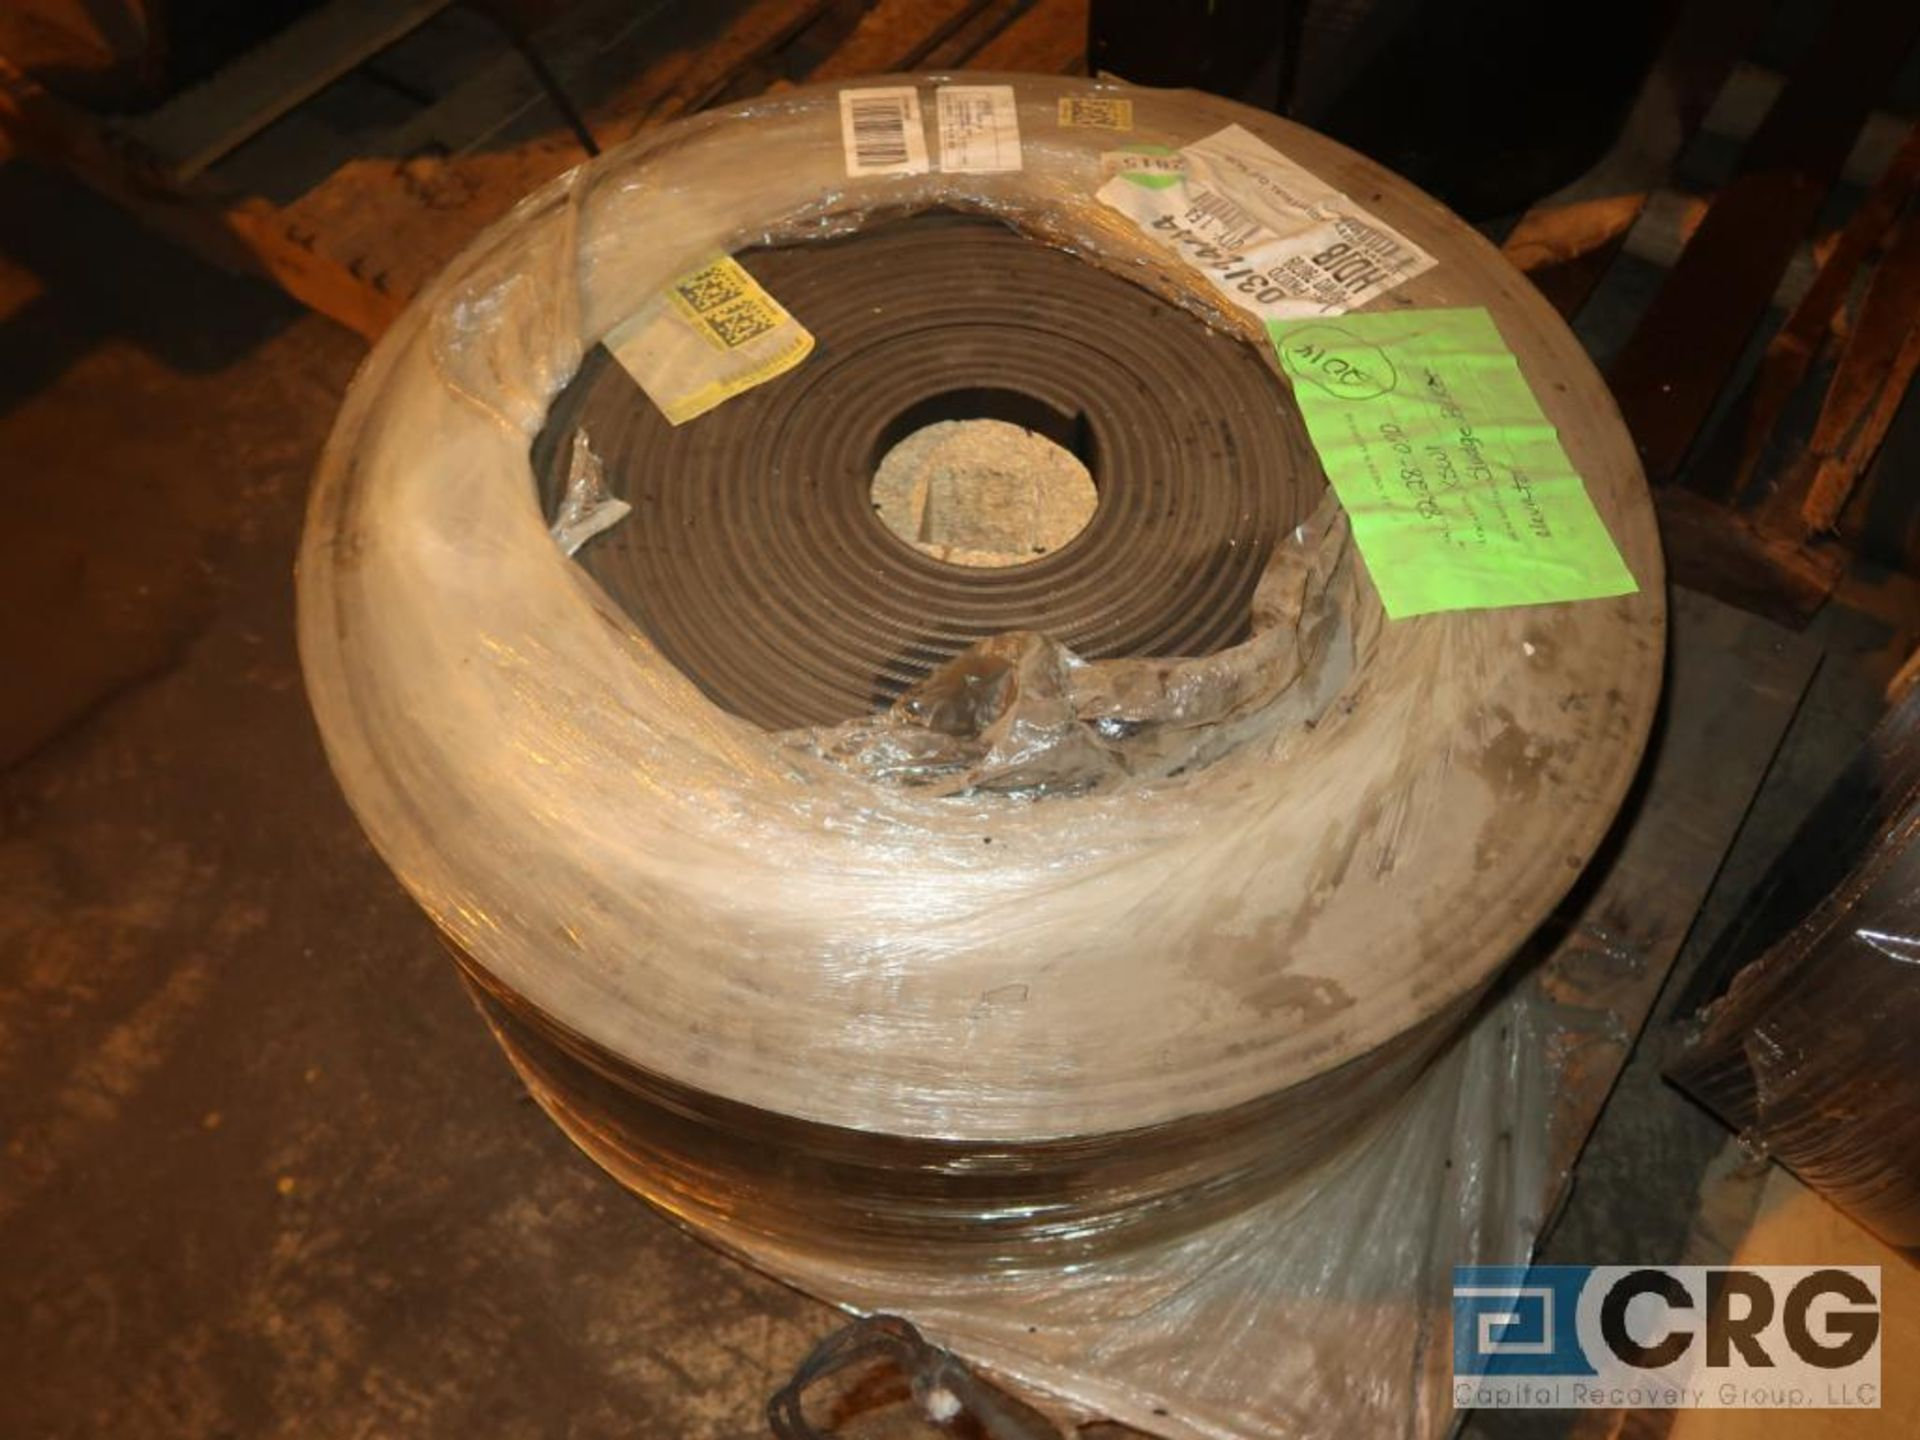 Lot of conveyor parts including belting, pulleys, and rollers (Next Bay Cage Area) - Image 4 of 5